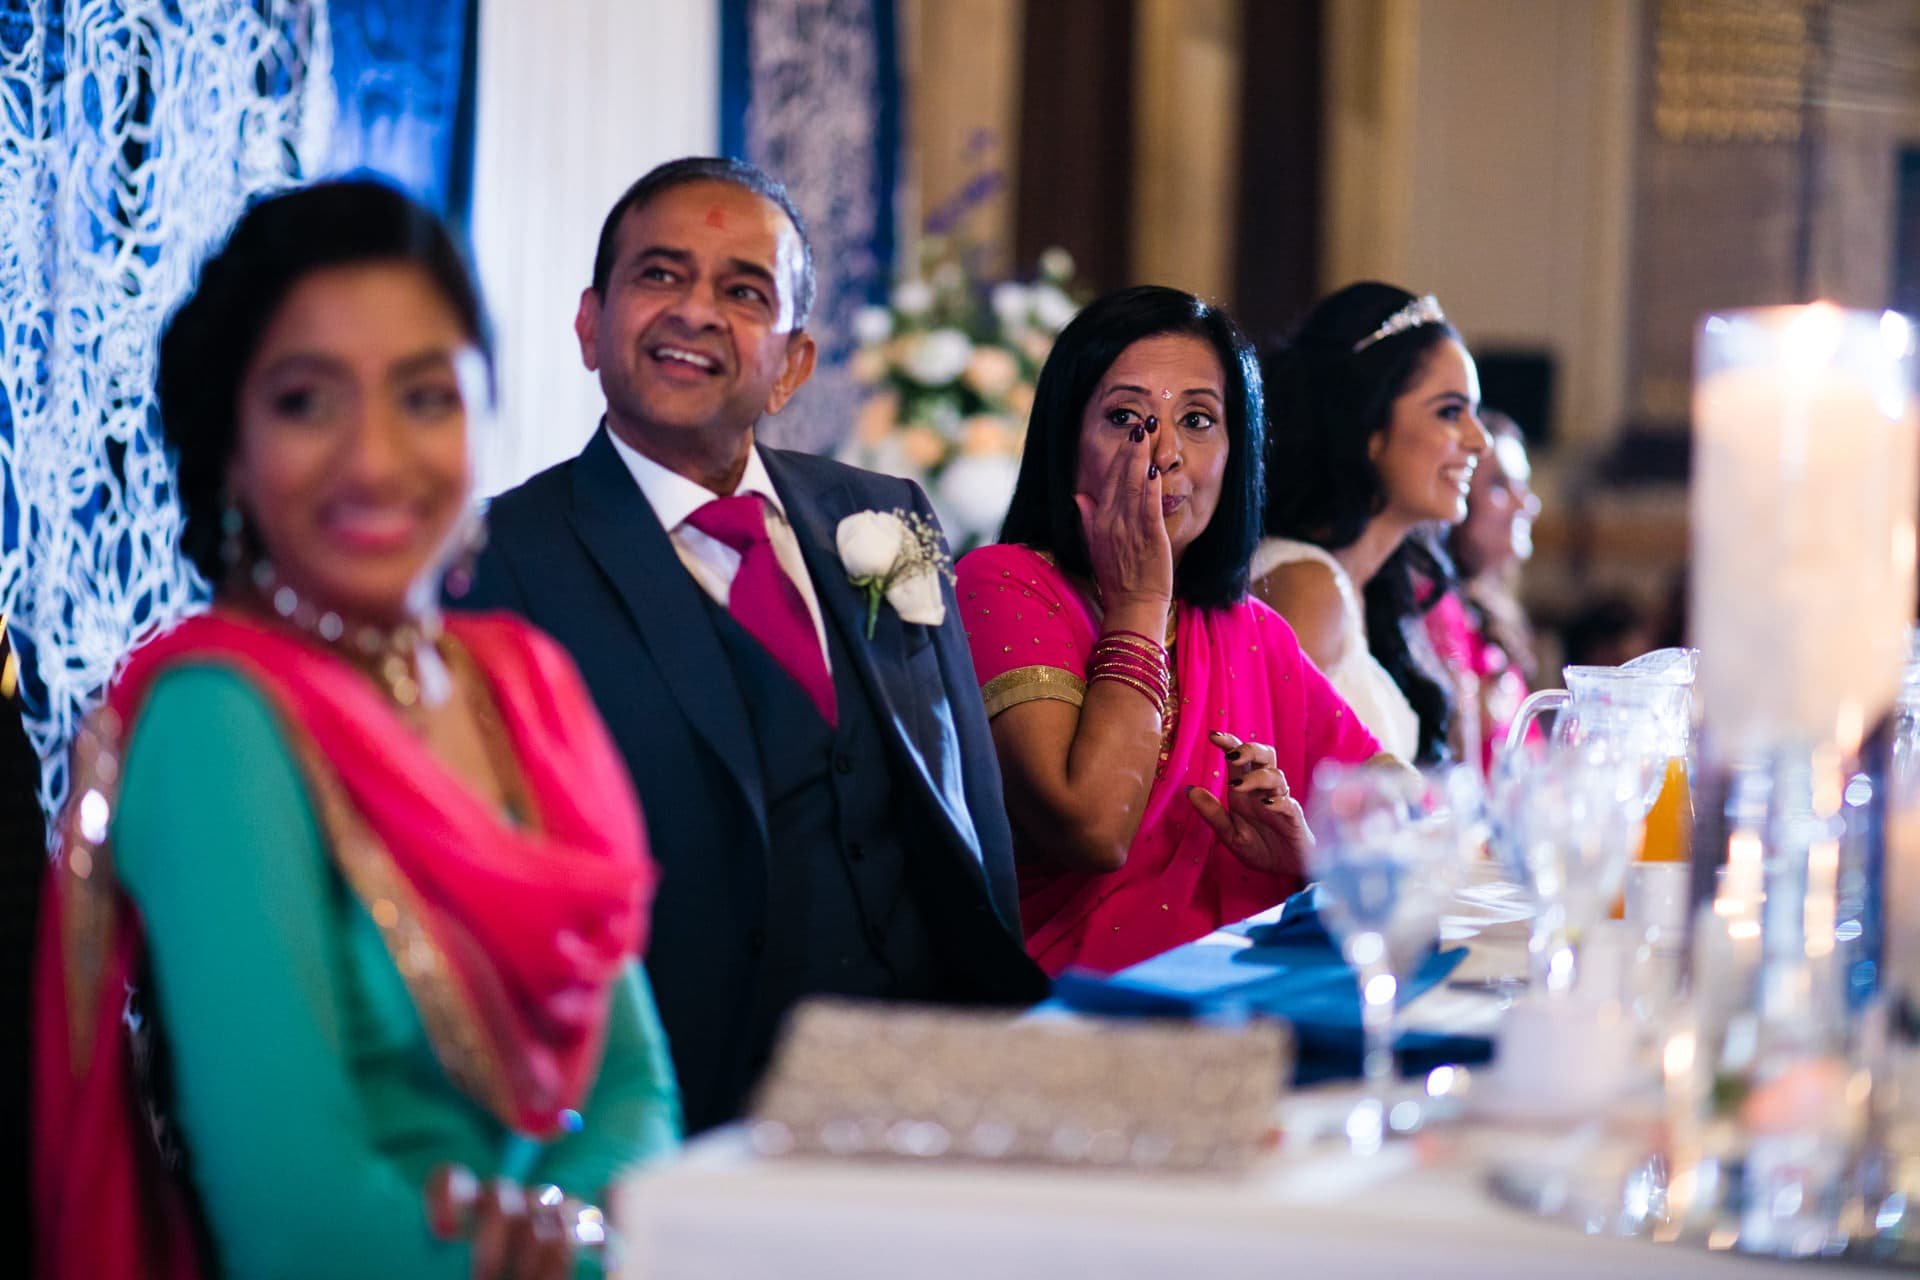 Mother of Bride wiping eyes during speeches